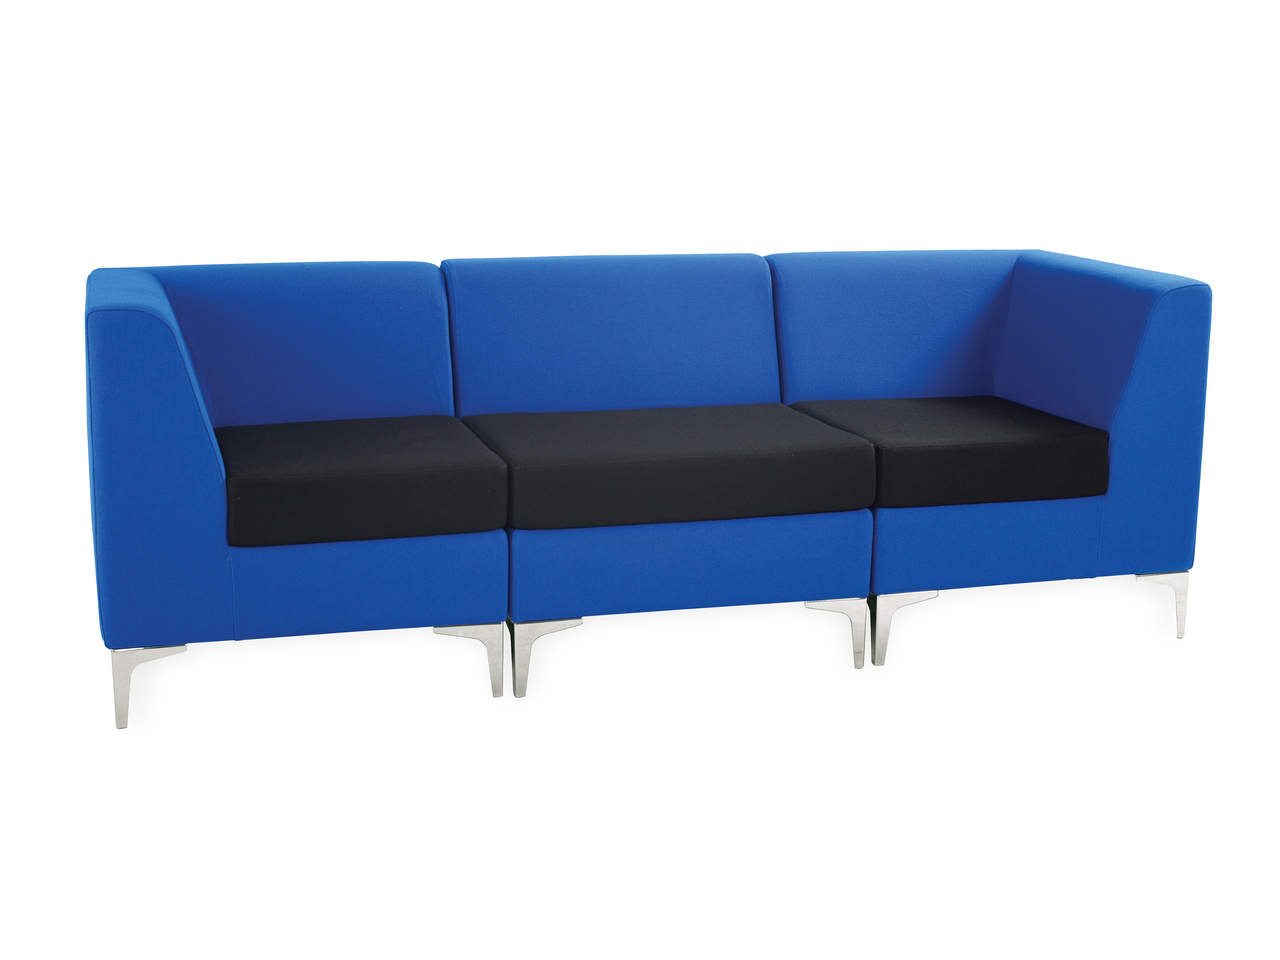 Simoom Modular Reception Seating